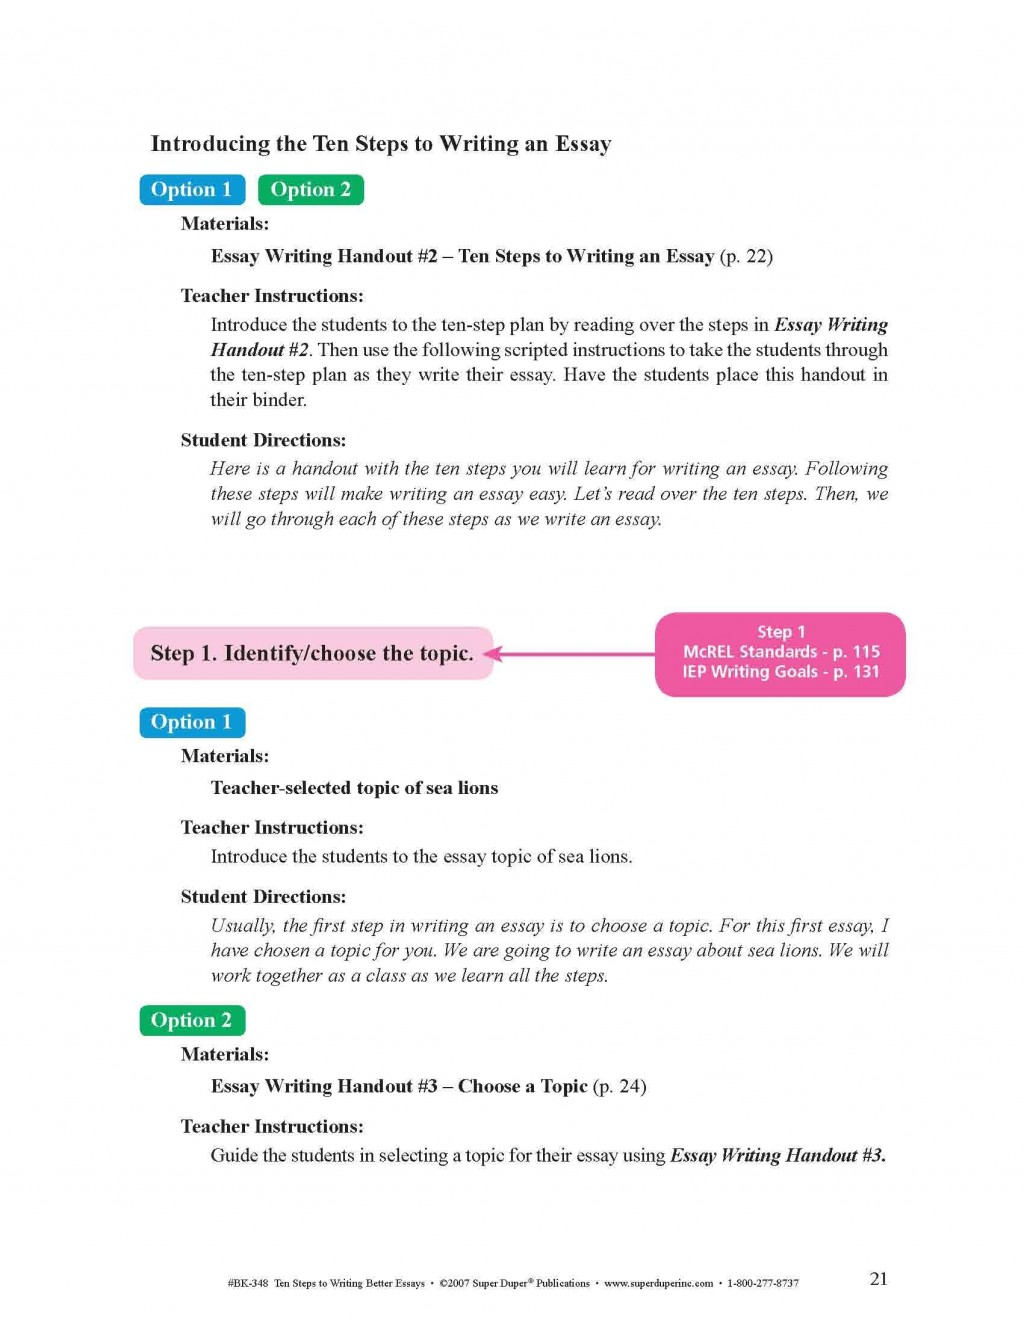 012 Steps To Writing An Essay 81irq27qghl Stunning 4th Grade Middle School Conclusion Large